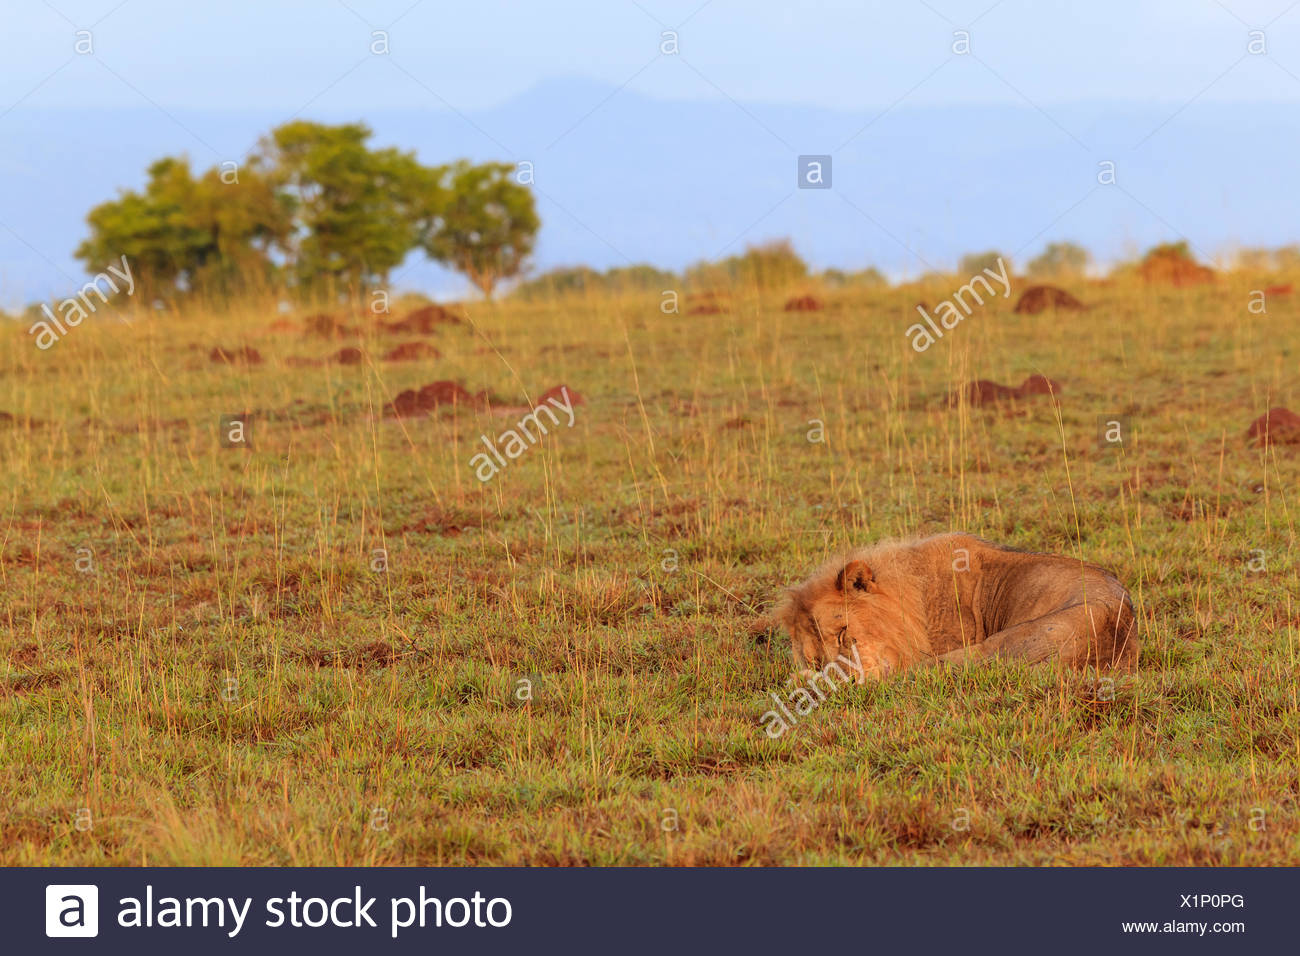 An African lion, Panthera leo, sleeping in Murchison Falls National Park. - Stock Image